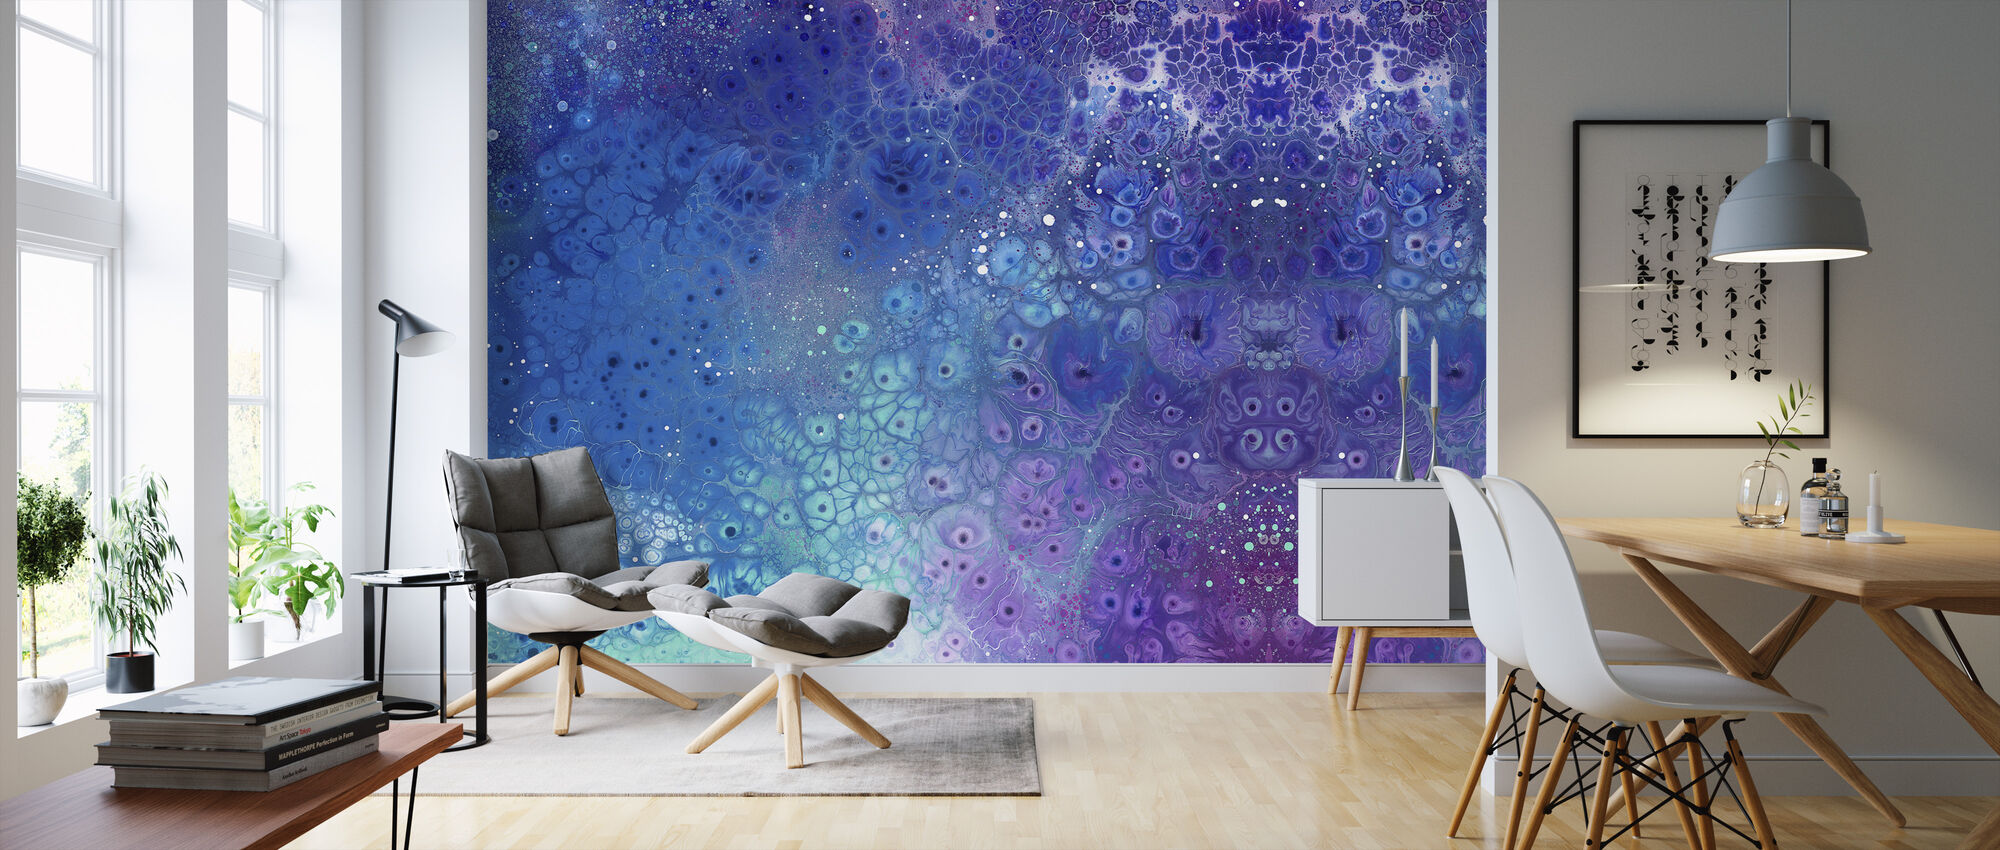 AURA Aquatic - Behang - Woonkamer